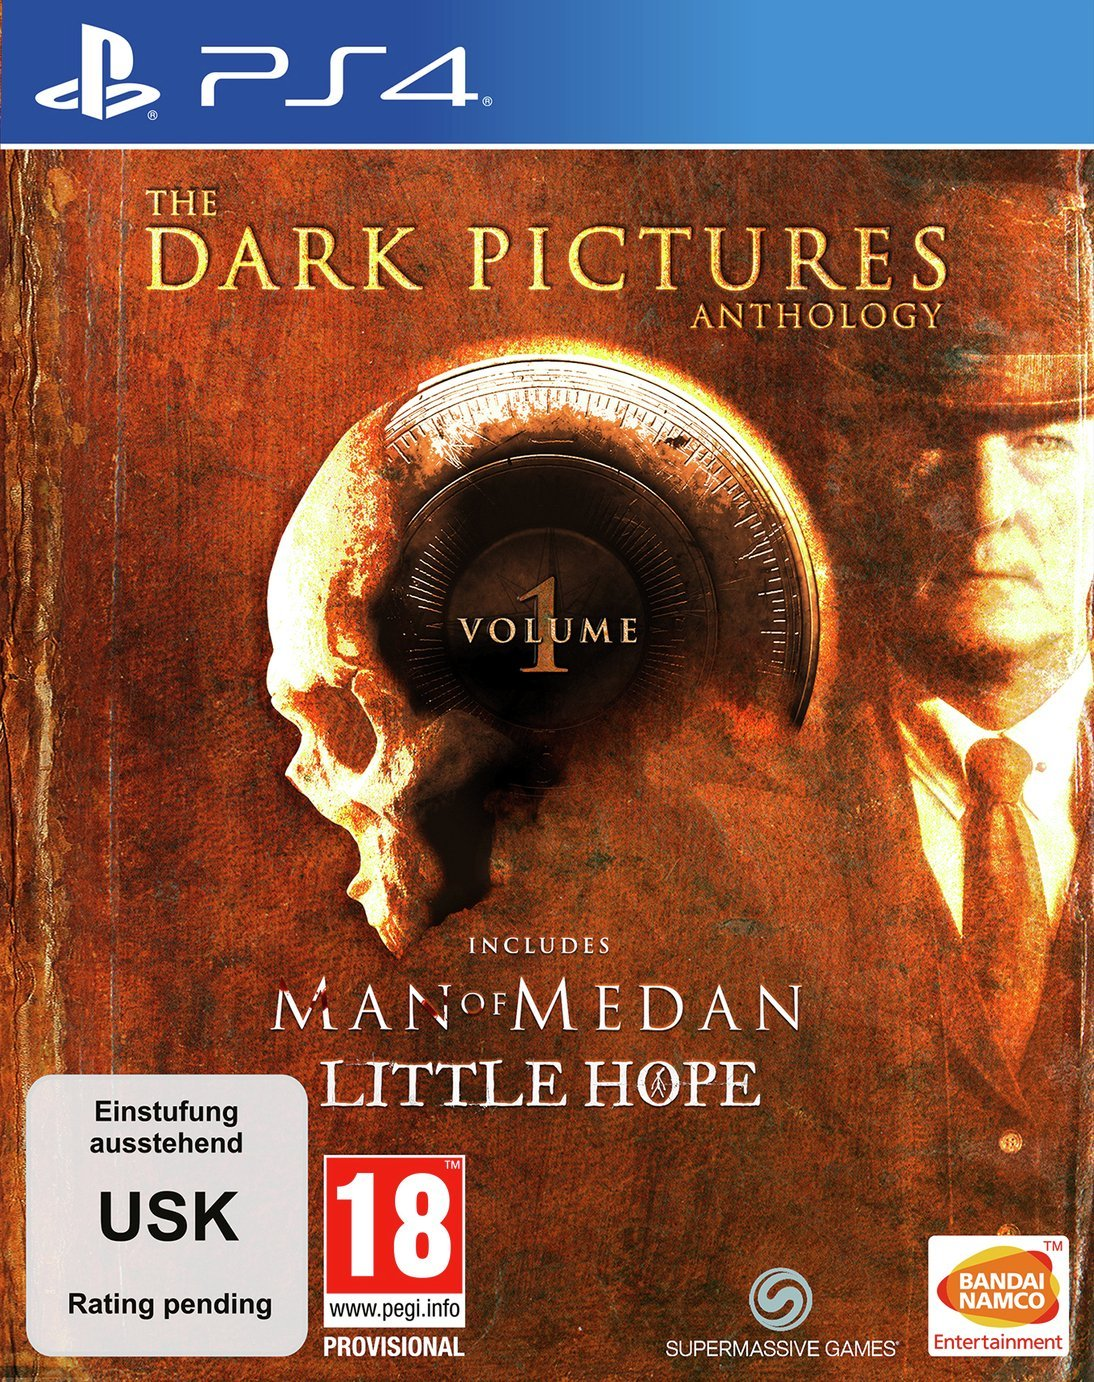 Dark Pictures Anthology Limited Edition PS4 Game Pre-Order